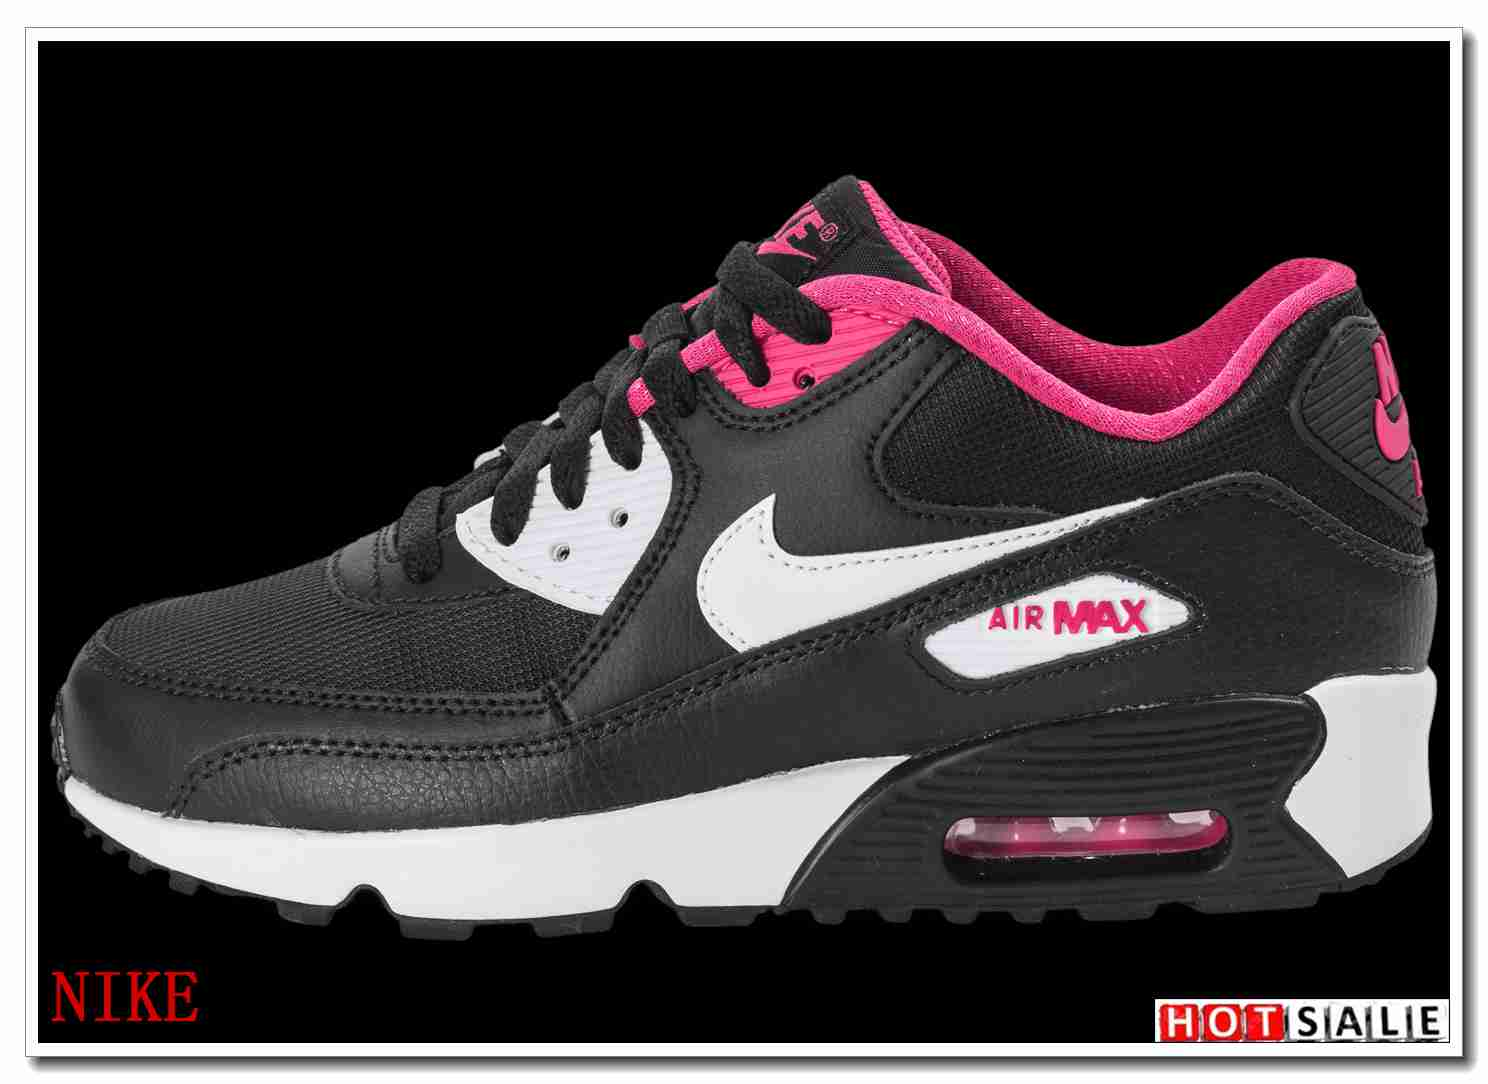 pretty nice 64639 1ef40 SJ0853 Comme La Plupart 2018 Nouveau style Nike Air Max 90 - Femme  Chaussures - Promotions Vente - H.K.Y. 300 - Taille   36~39